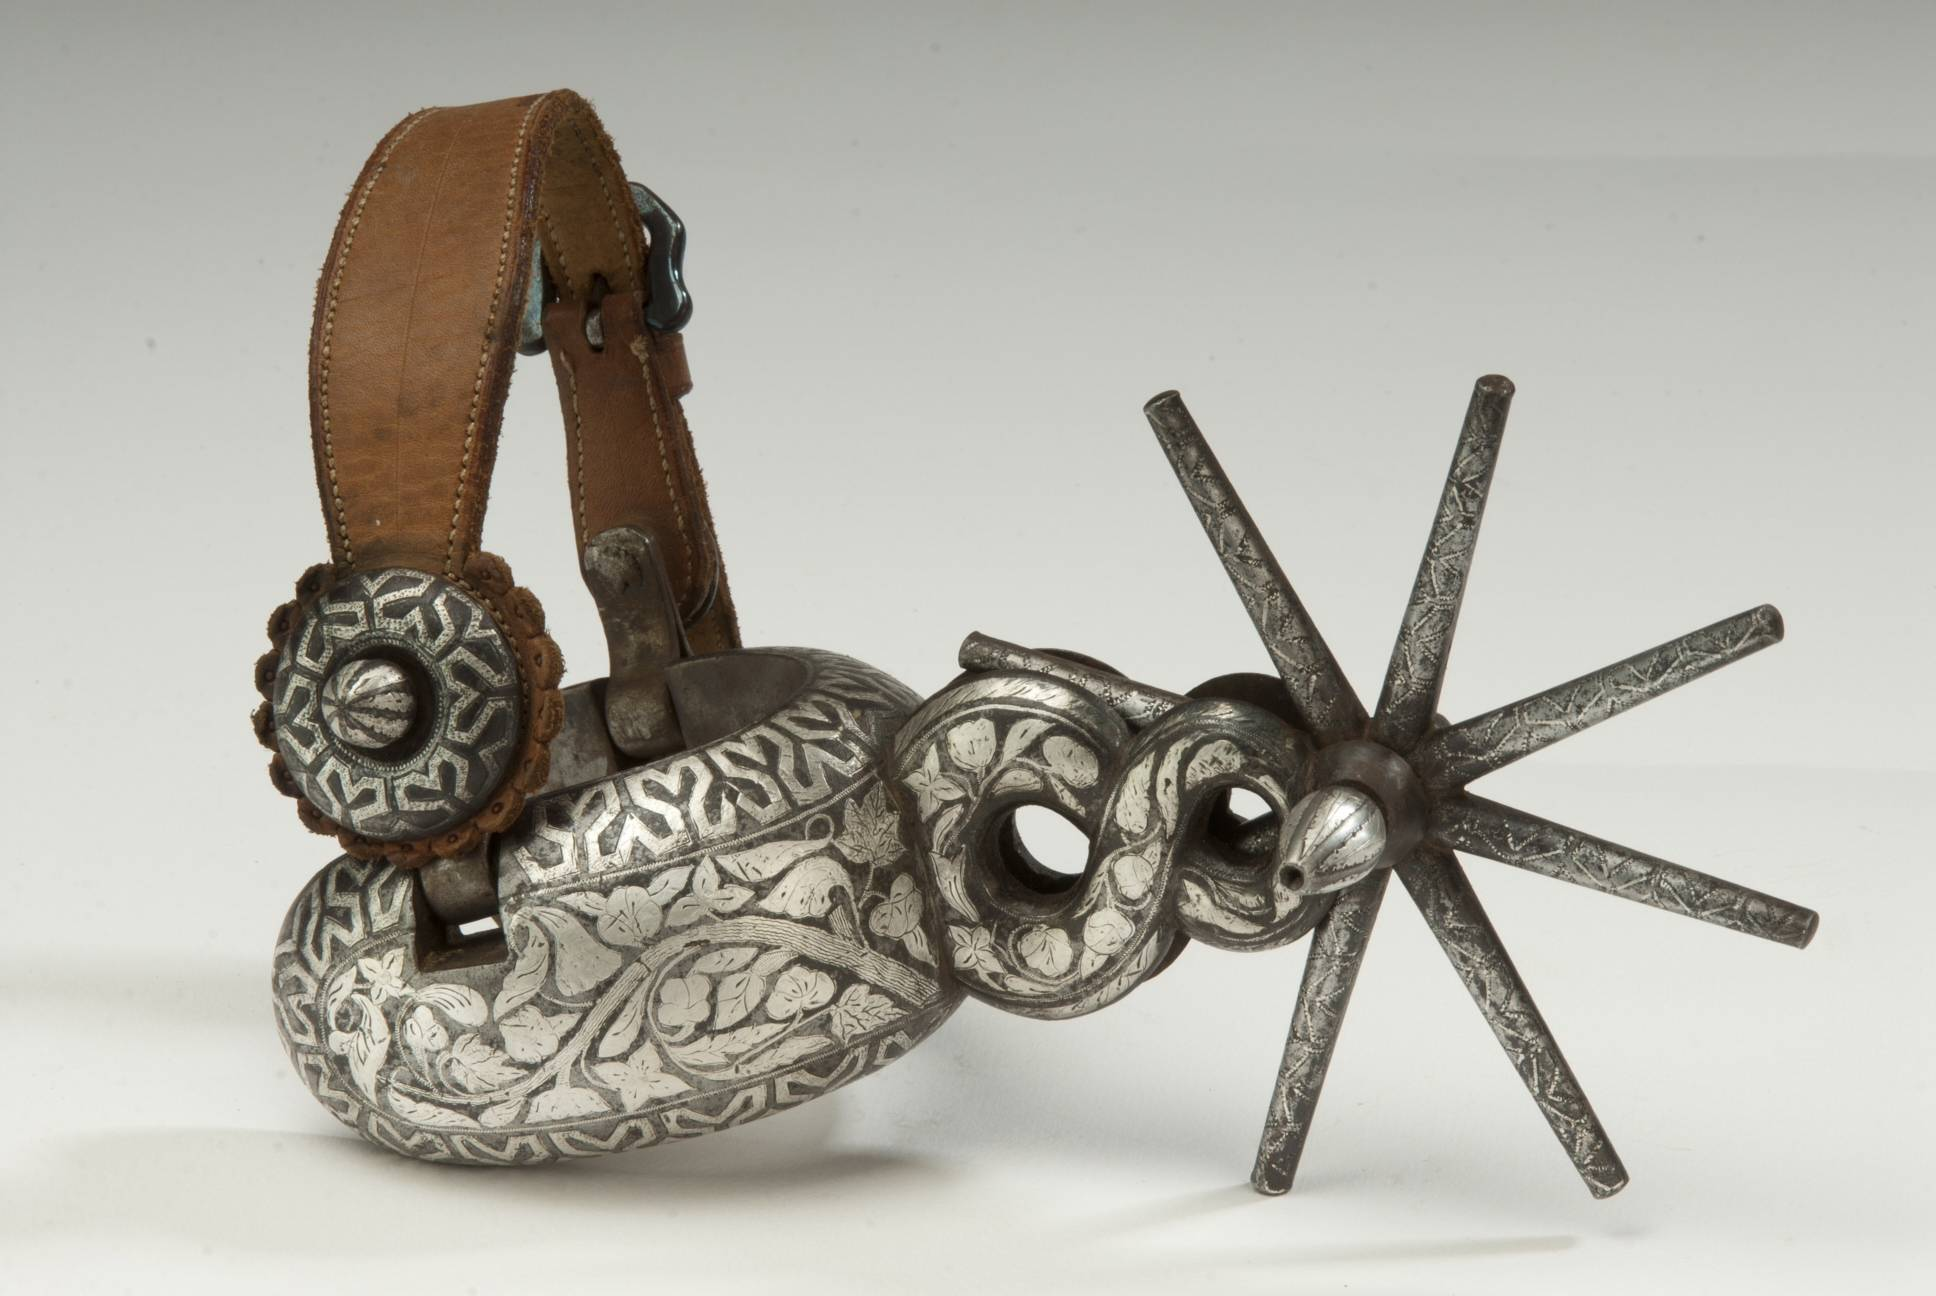 "A silver inlaid spur is on display at the Albuquerque Museum as part of the exhibition ""Arte en la Charreria: The Artisanship of Mexican Equestrian Culture."" Each item reflects different elements of the culture of the legendary charro, the Mexican horseman."